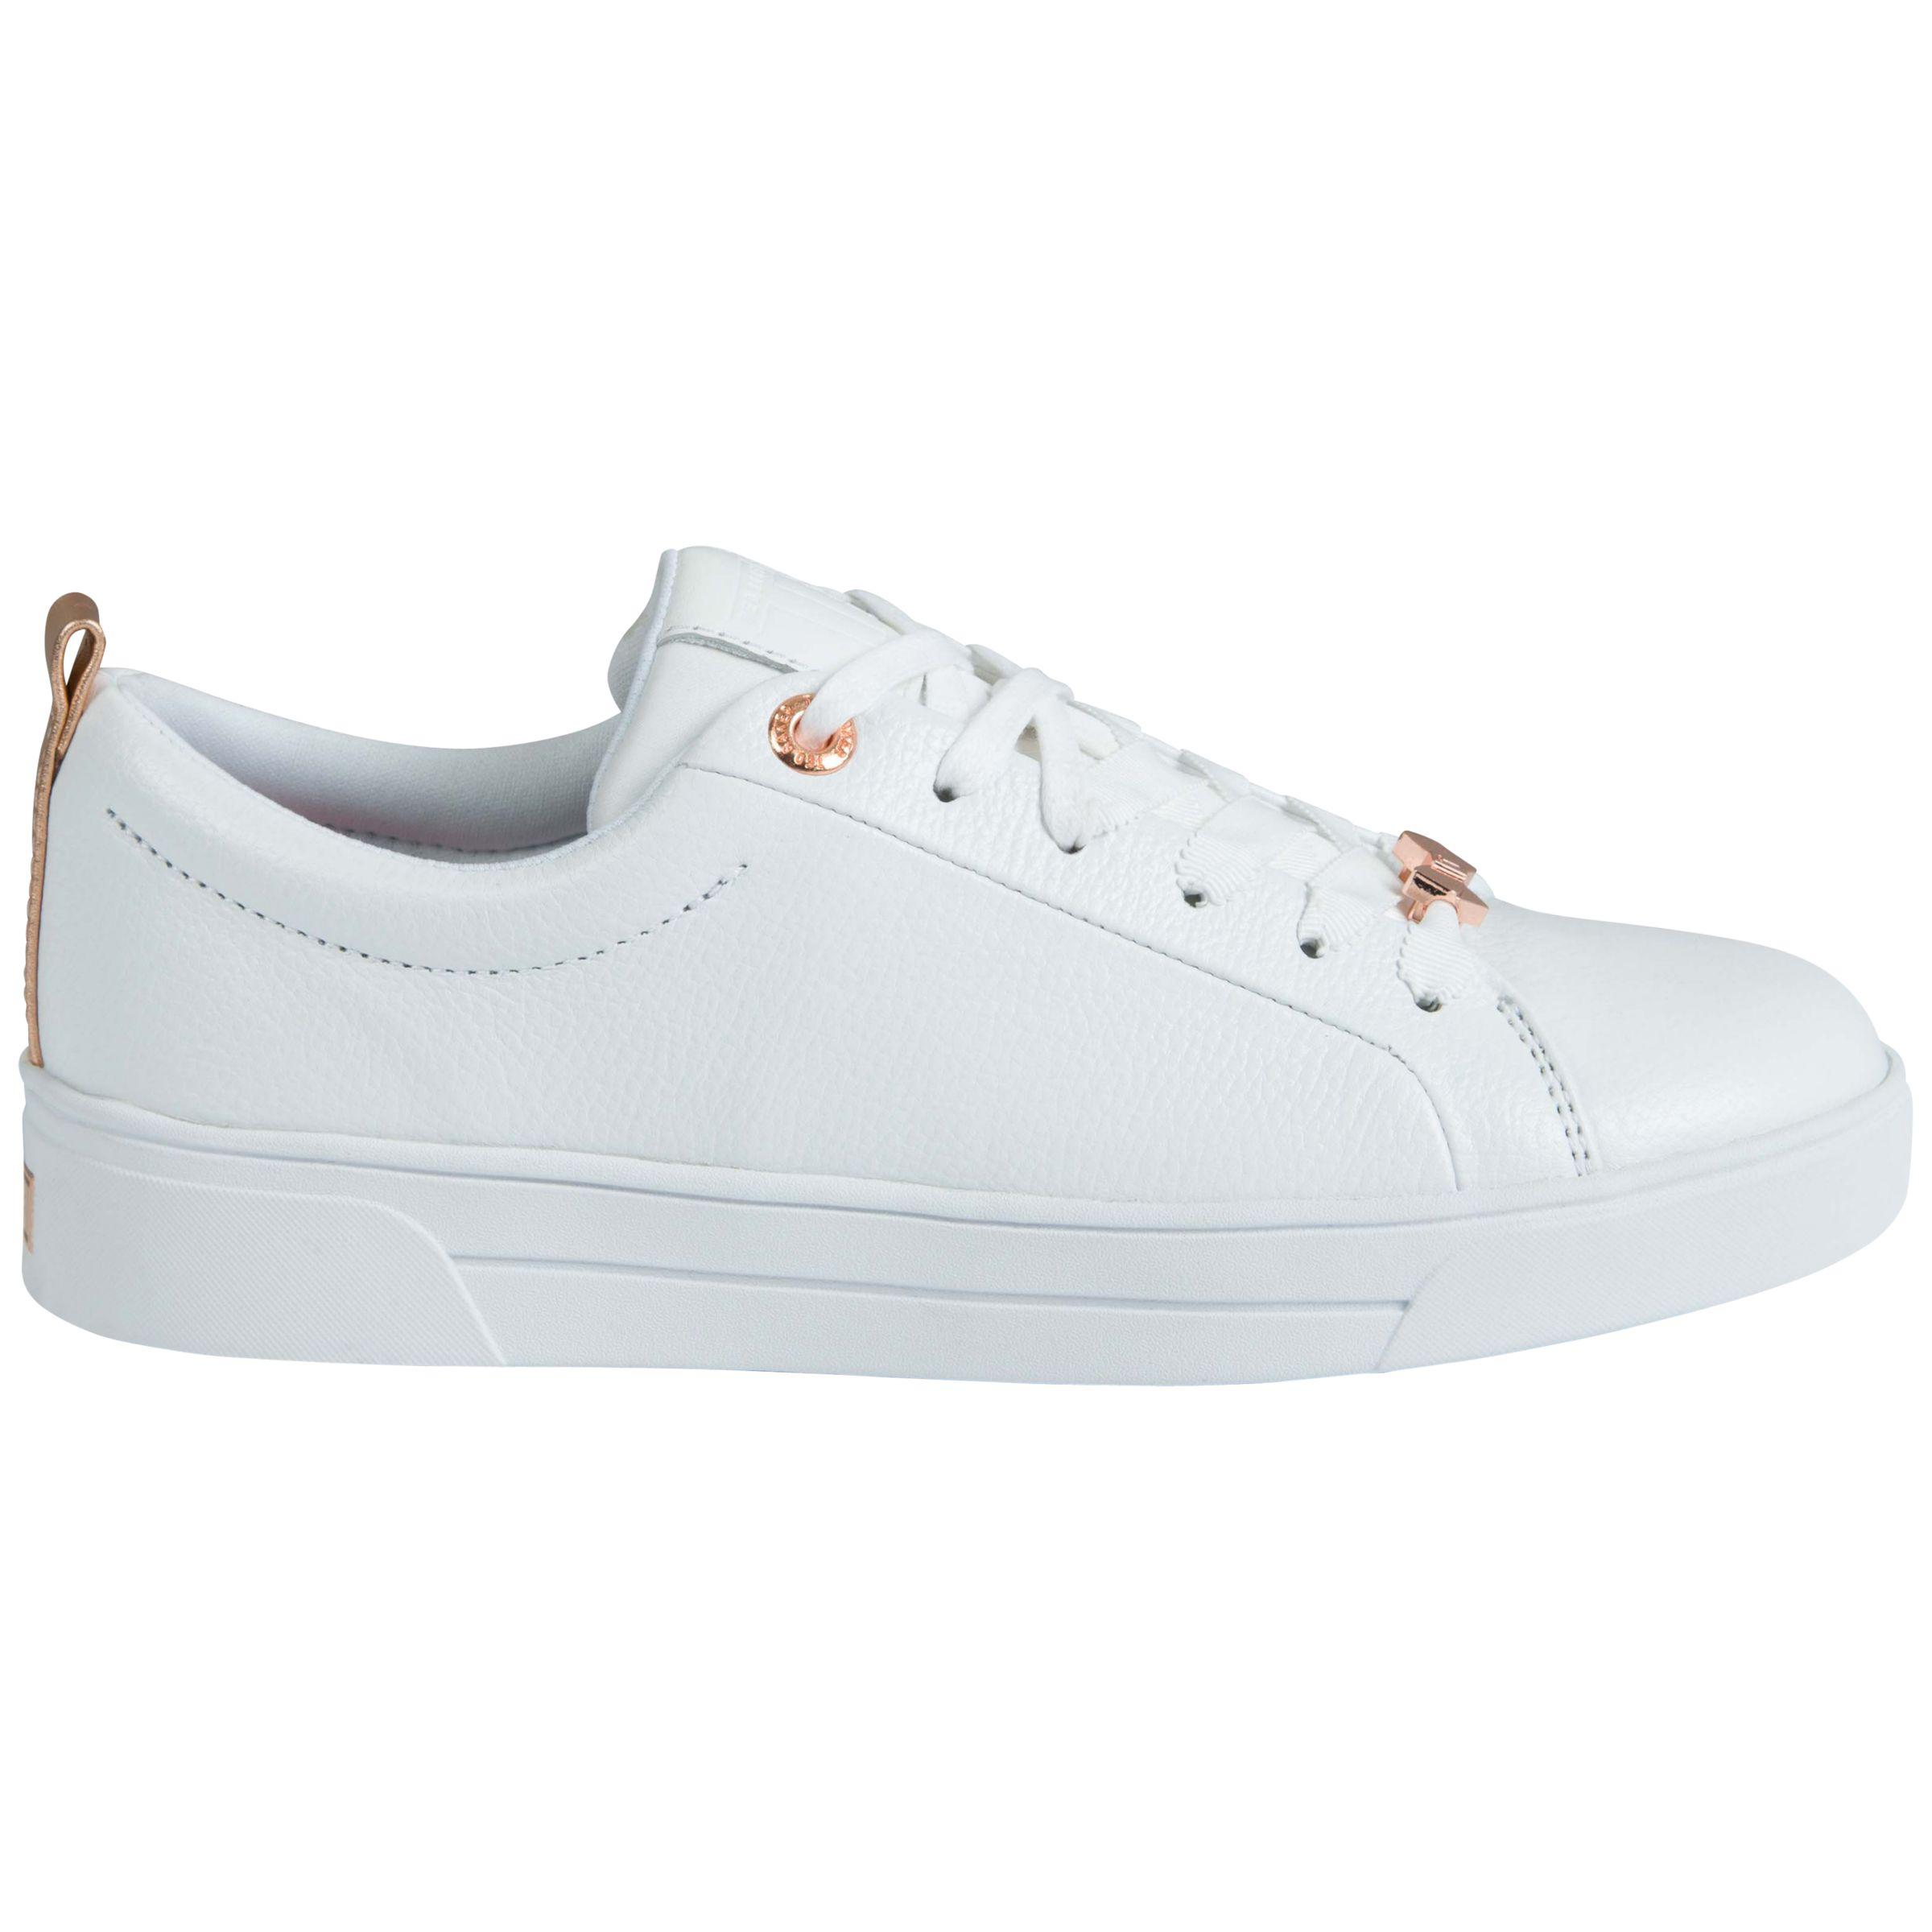 5226b3fea Ted Baker Gielli Lace Up Trainers in White - Lyst